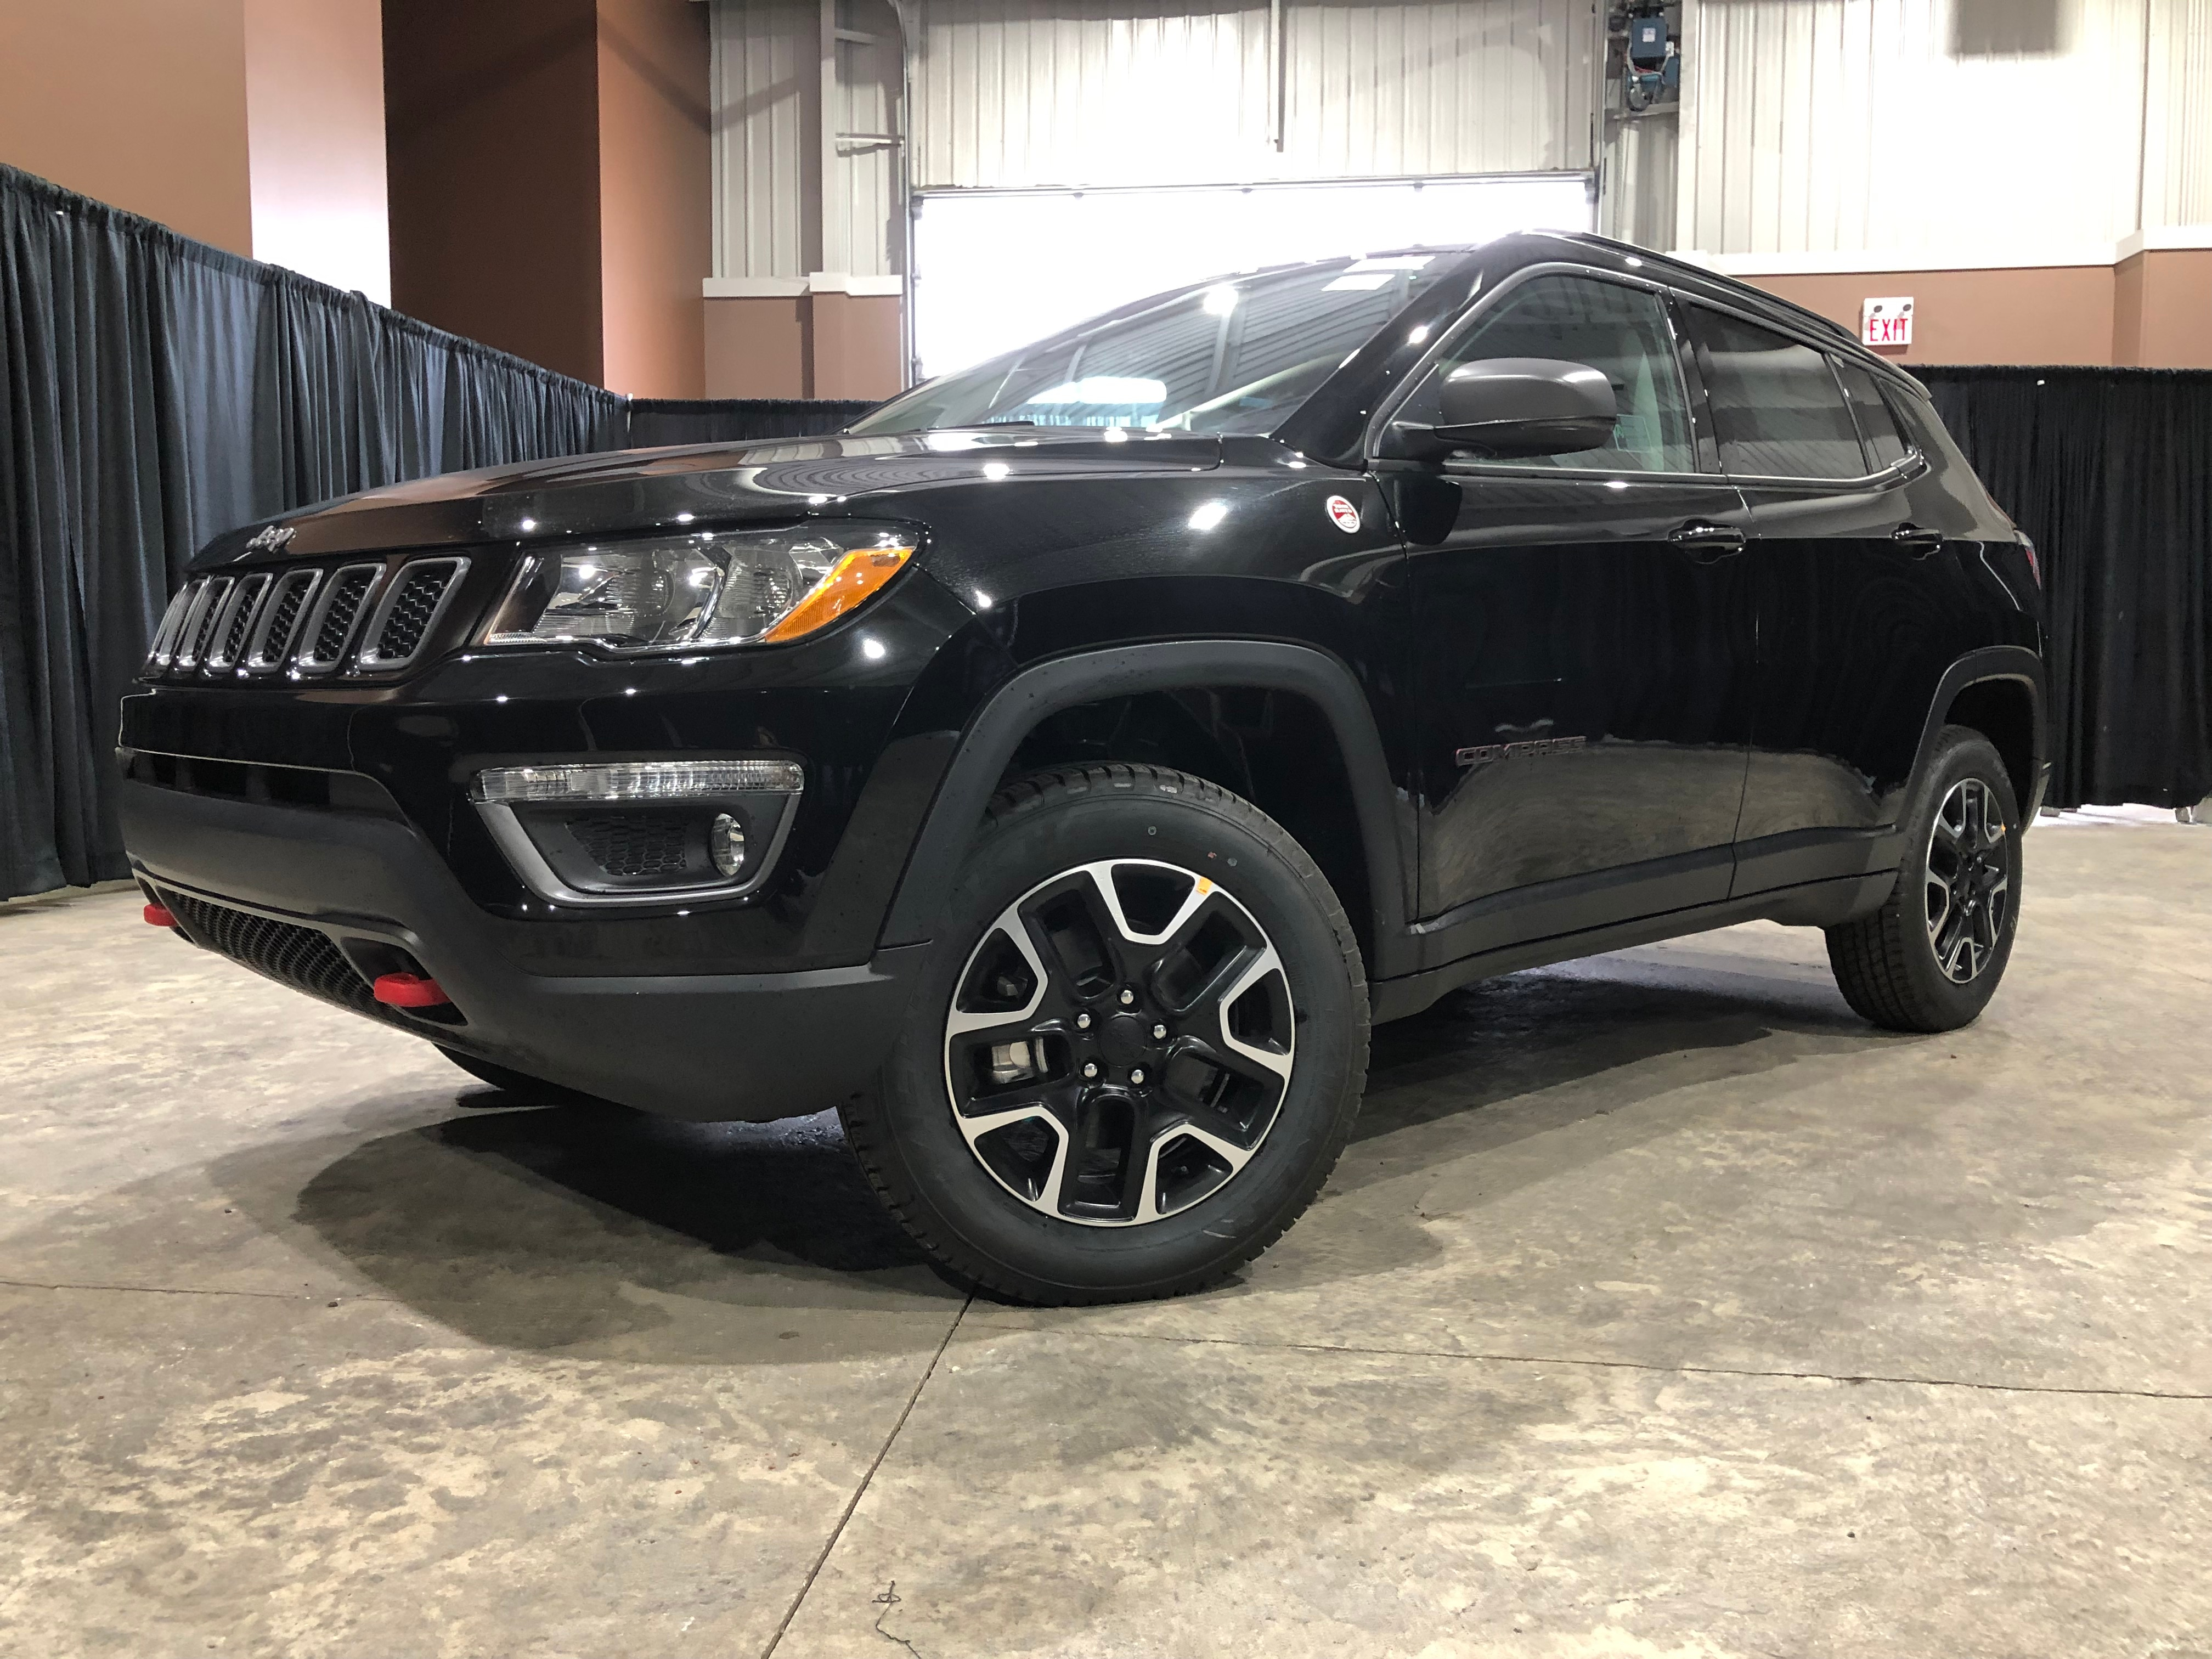 Leather Jeep Seats >> New 2020 Jeep Compass Trailhawk Leather Seats For Sale In Red Deer Ab Near Lacombe Rimbey Olds Sylvan Lake Ab Vin 3c4njddb4lt104715